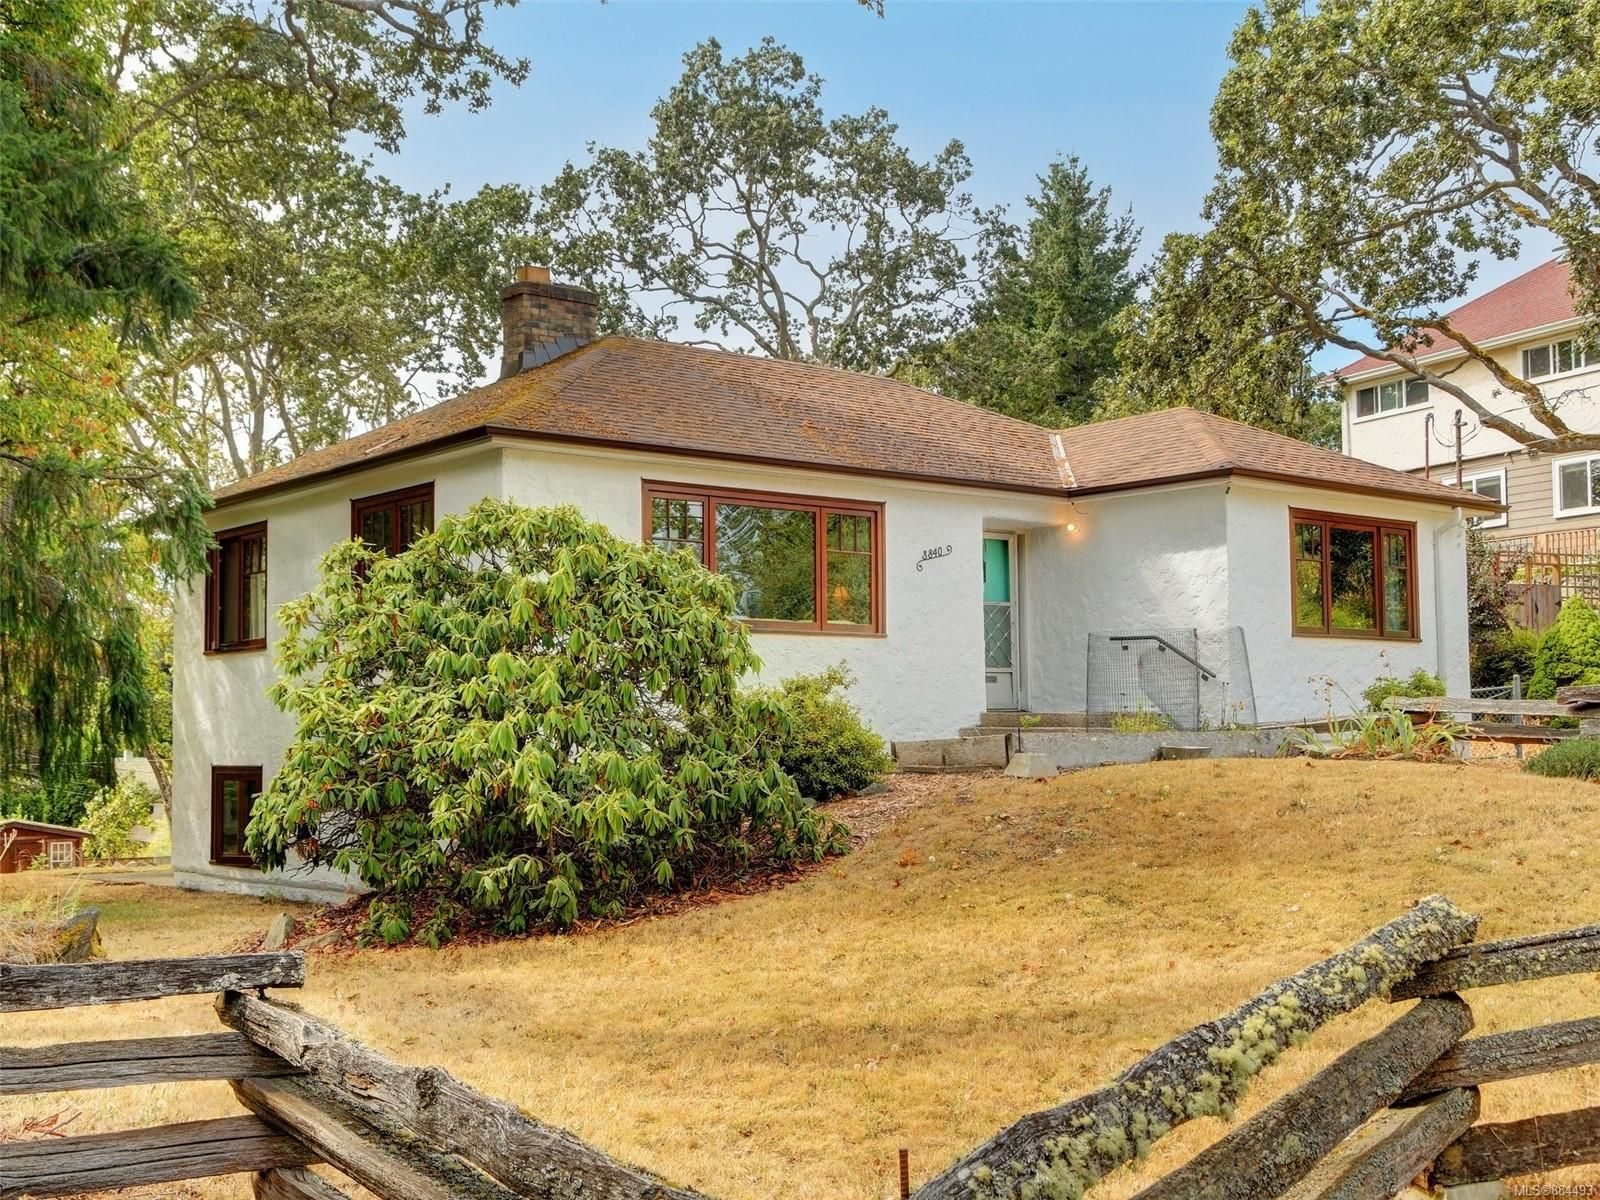 Main Photo: 3840 Synod Rd in : SE Cedar Hill House for sale (Saanich East)  : MLS®# 884493